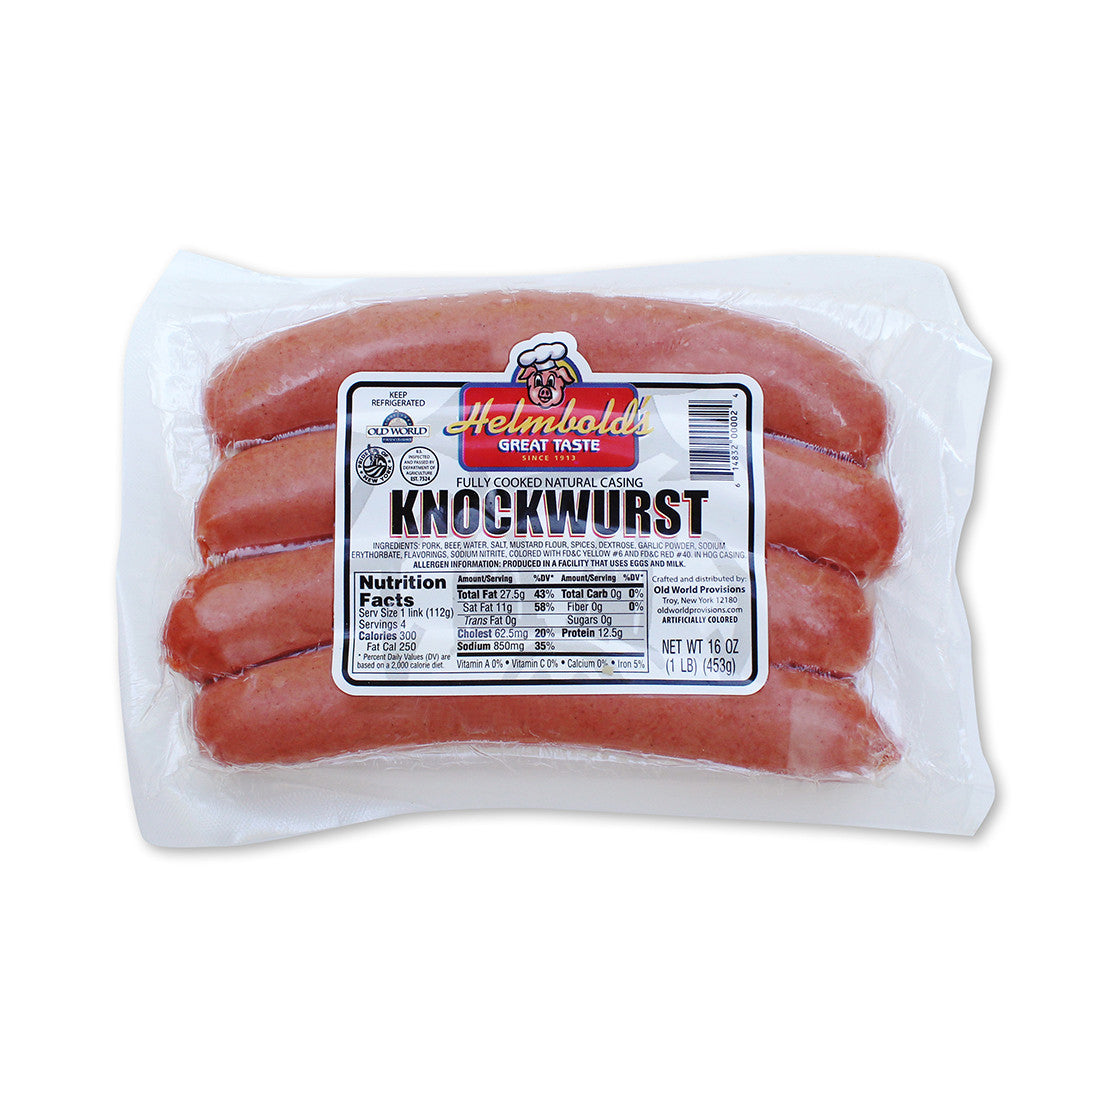 Helmbold's knockwurst is known as a jumbo frank, sausage or wurst.